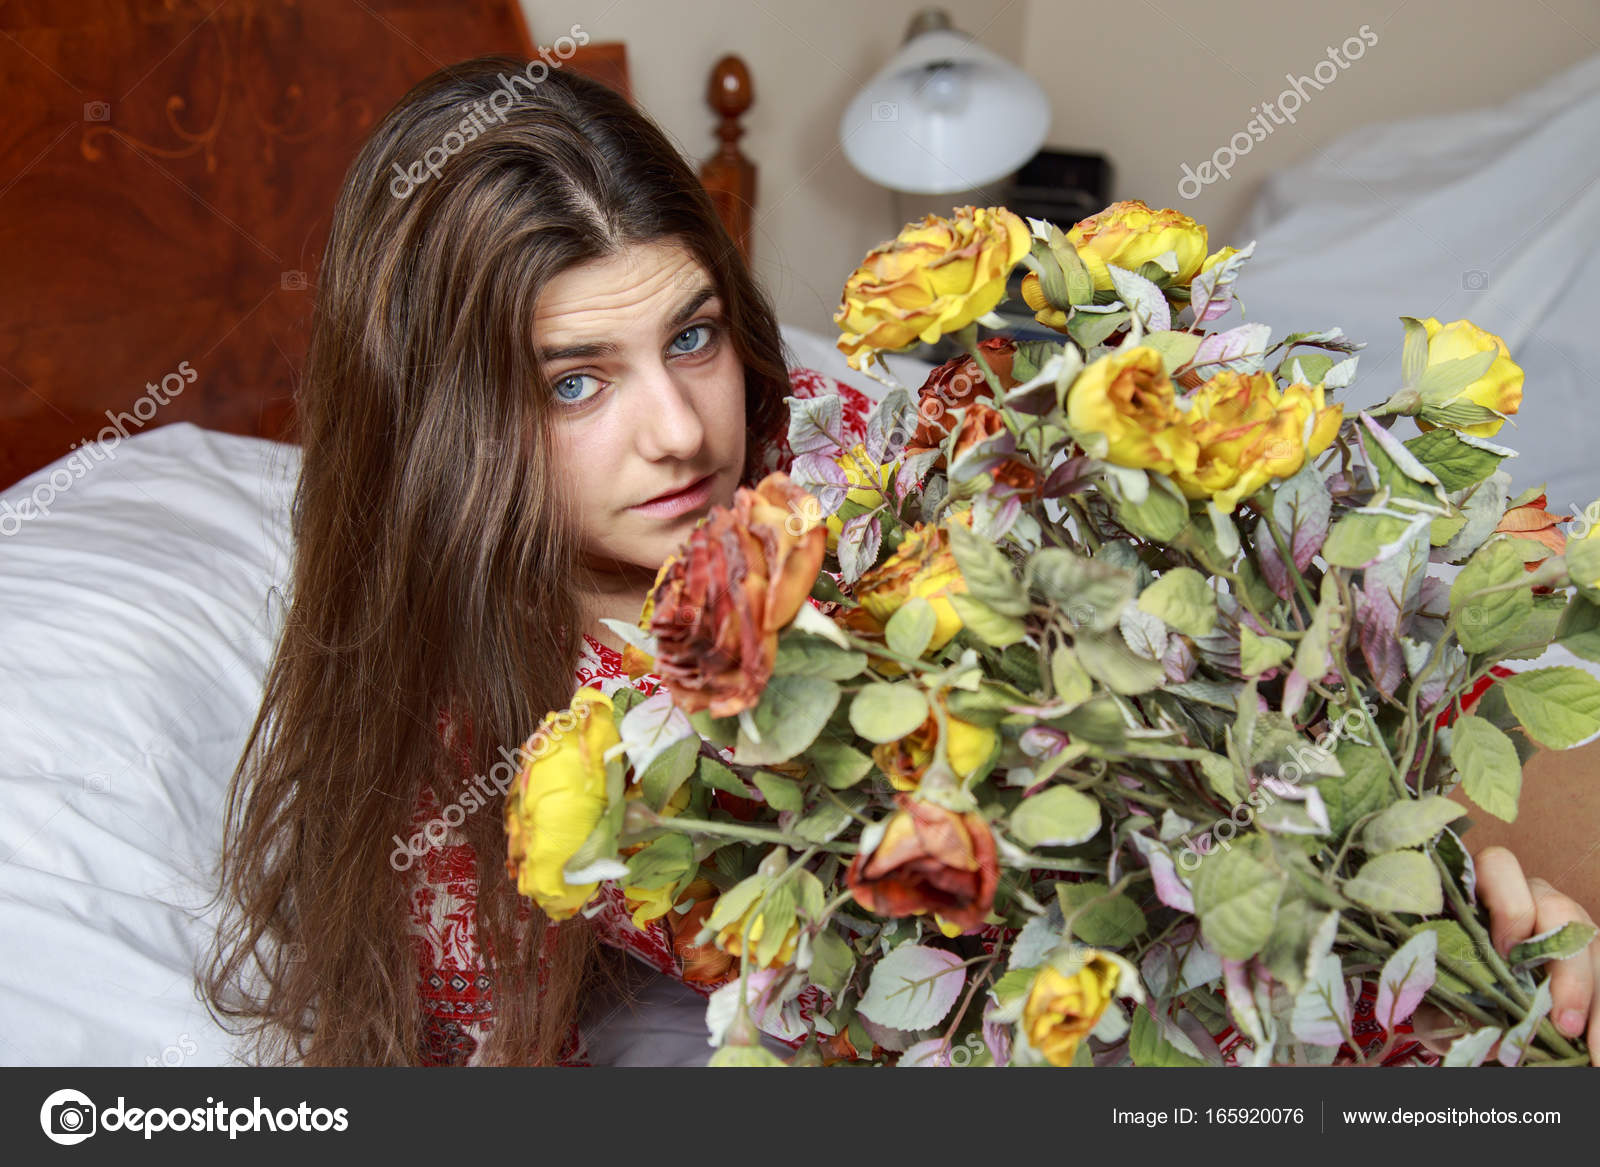 Beautiful young caucasian girl with blue eyes lying on the bed holding a  bouquet of dried flowers. The bed has white sheets and she is wearing a  dress with ... 892eb53ed